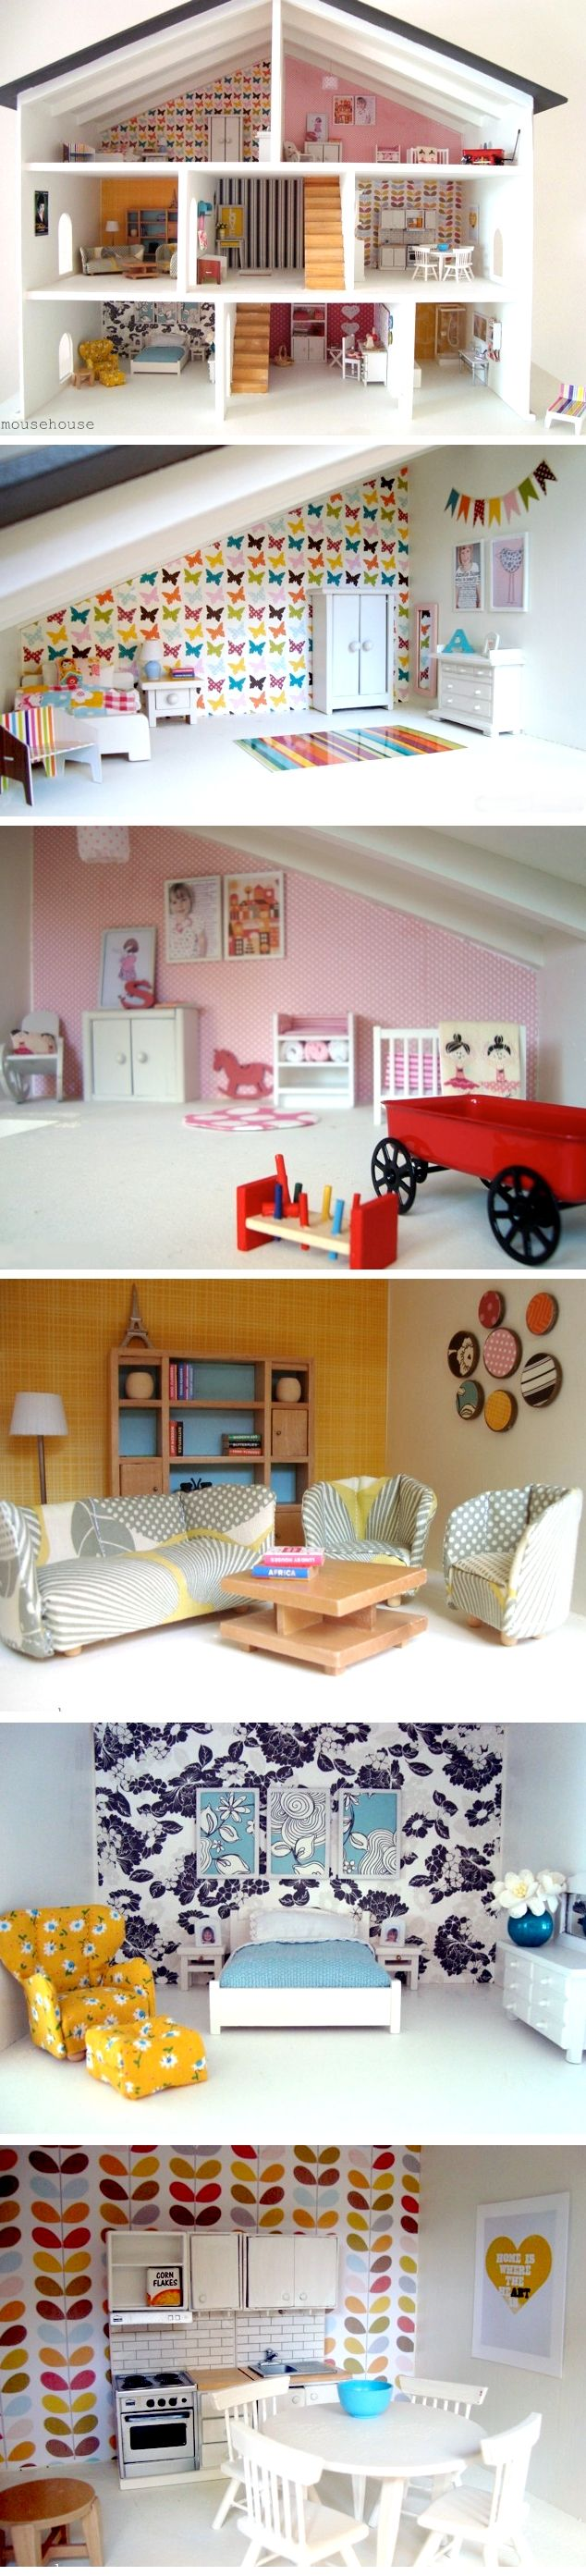 omg! looooove!! sweet dollhouse.